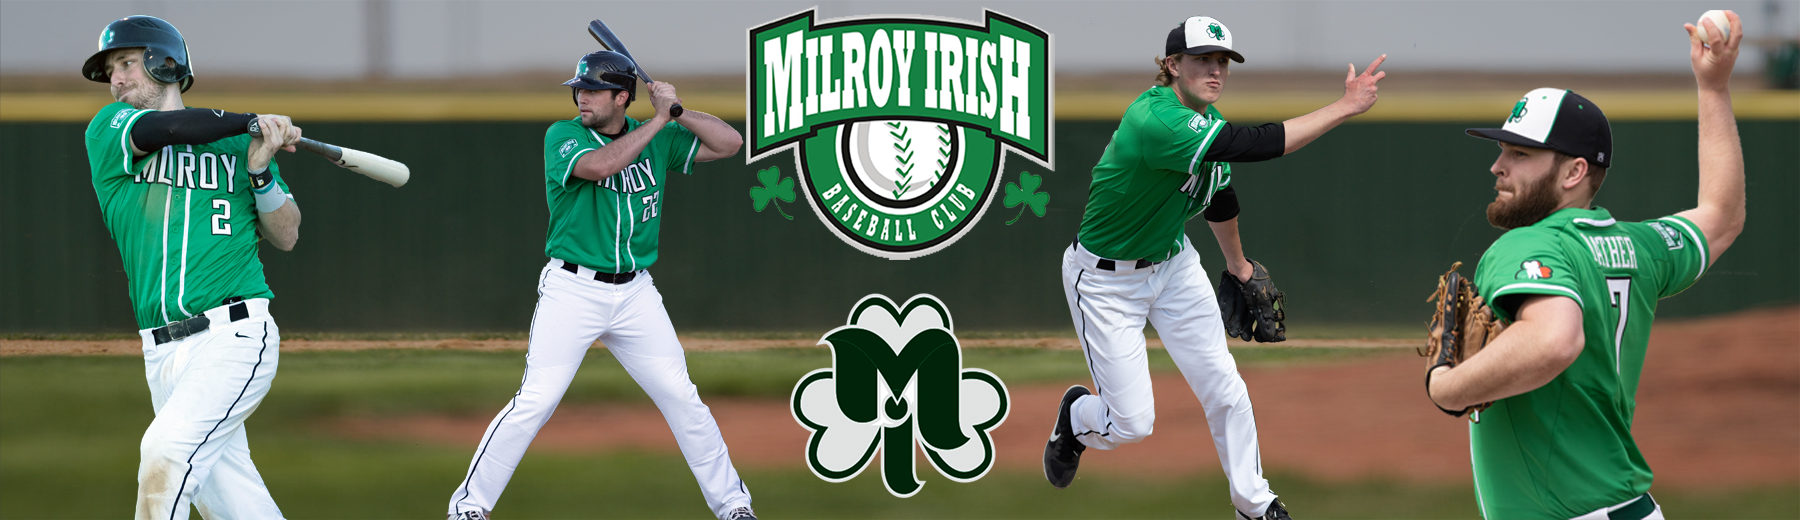 Milroy Irish